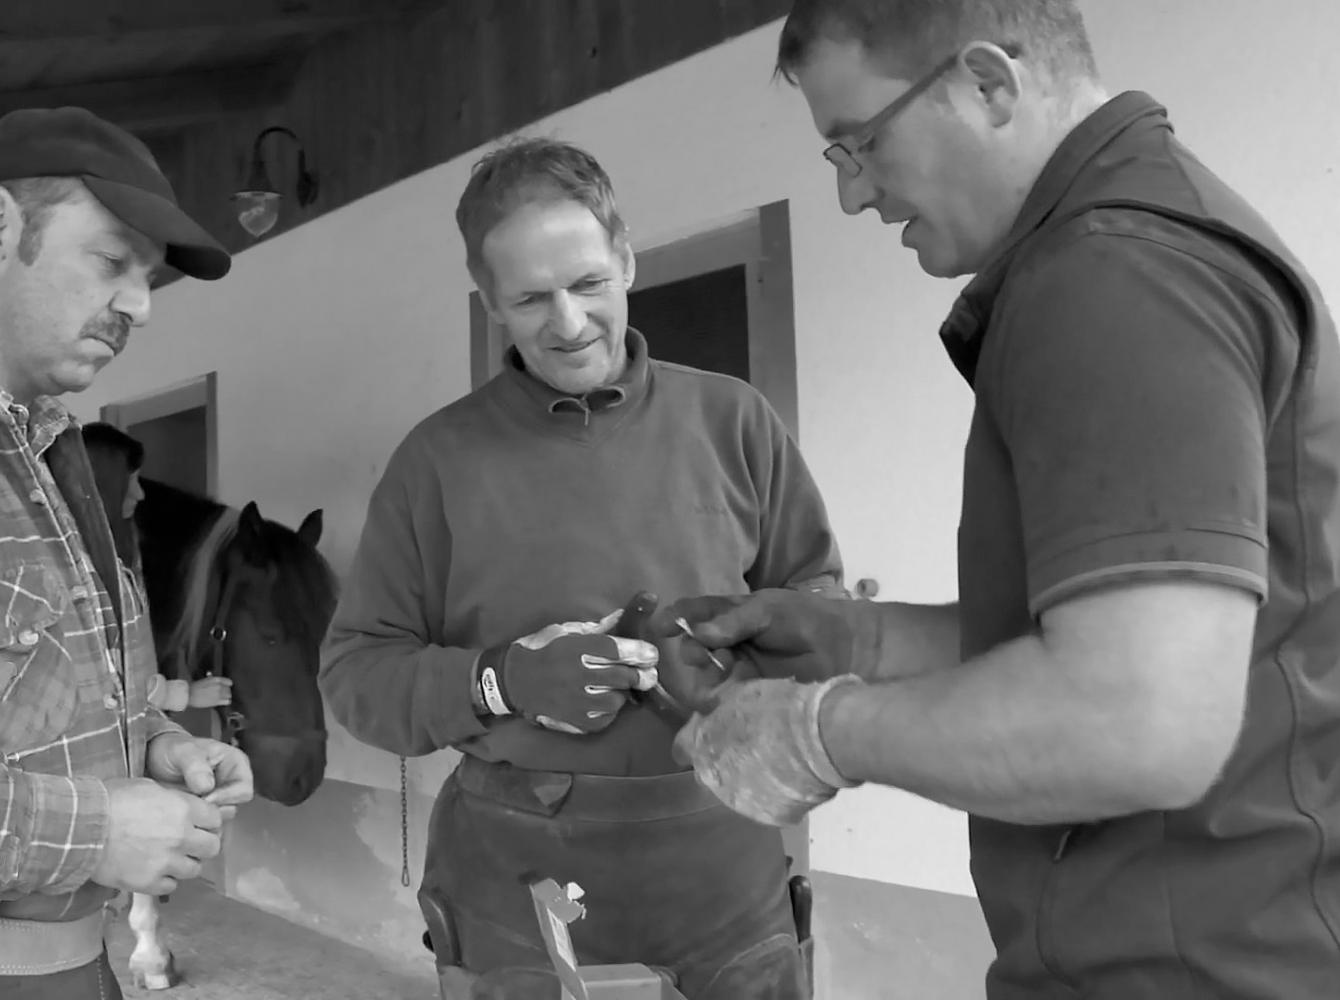 Christoph Müller talking with two farriers